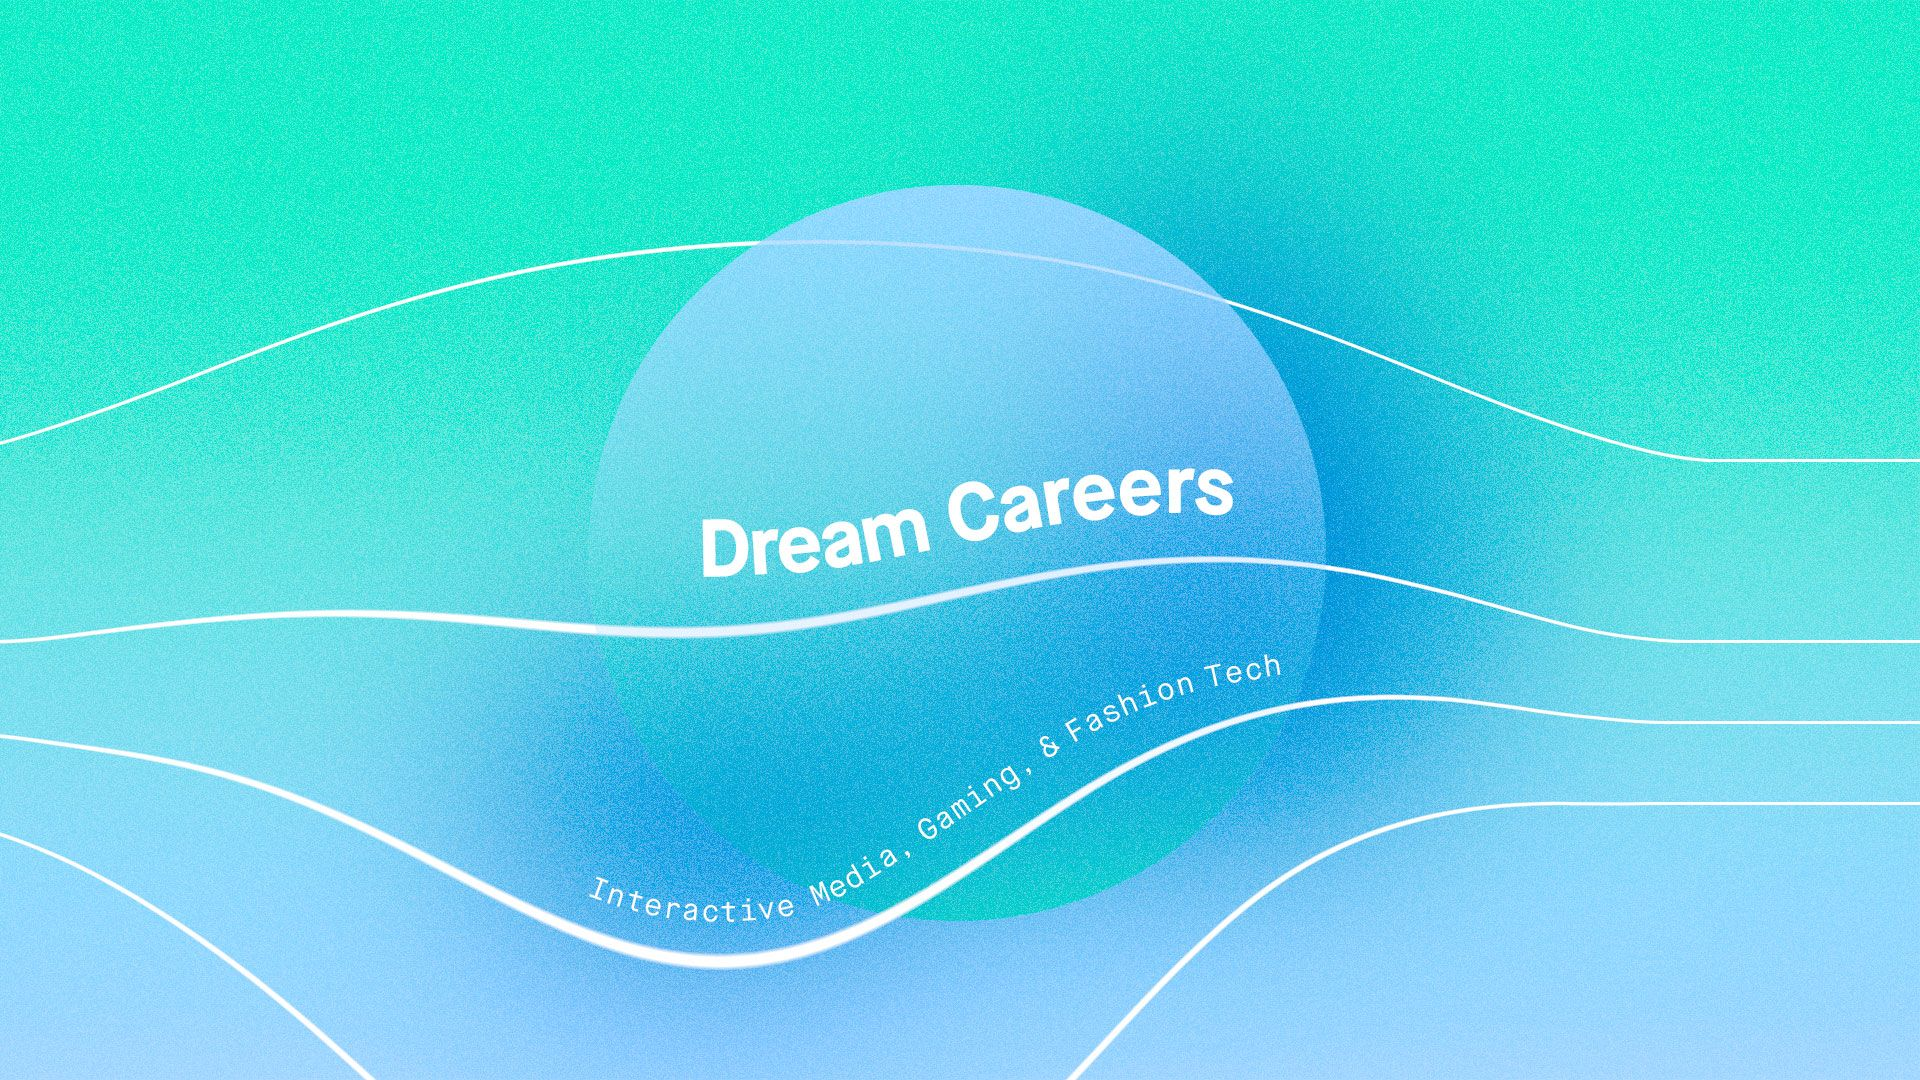 Dream Careers: Four Decades in Interactive Media, Gaming, & Fashion Tech